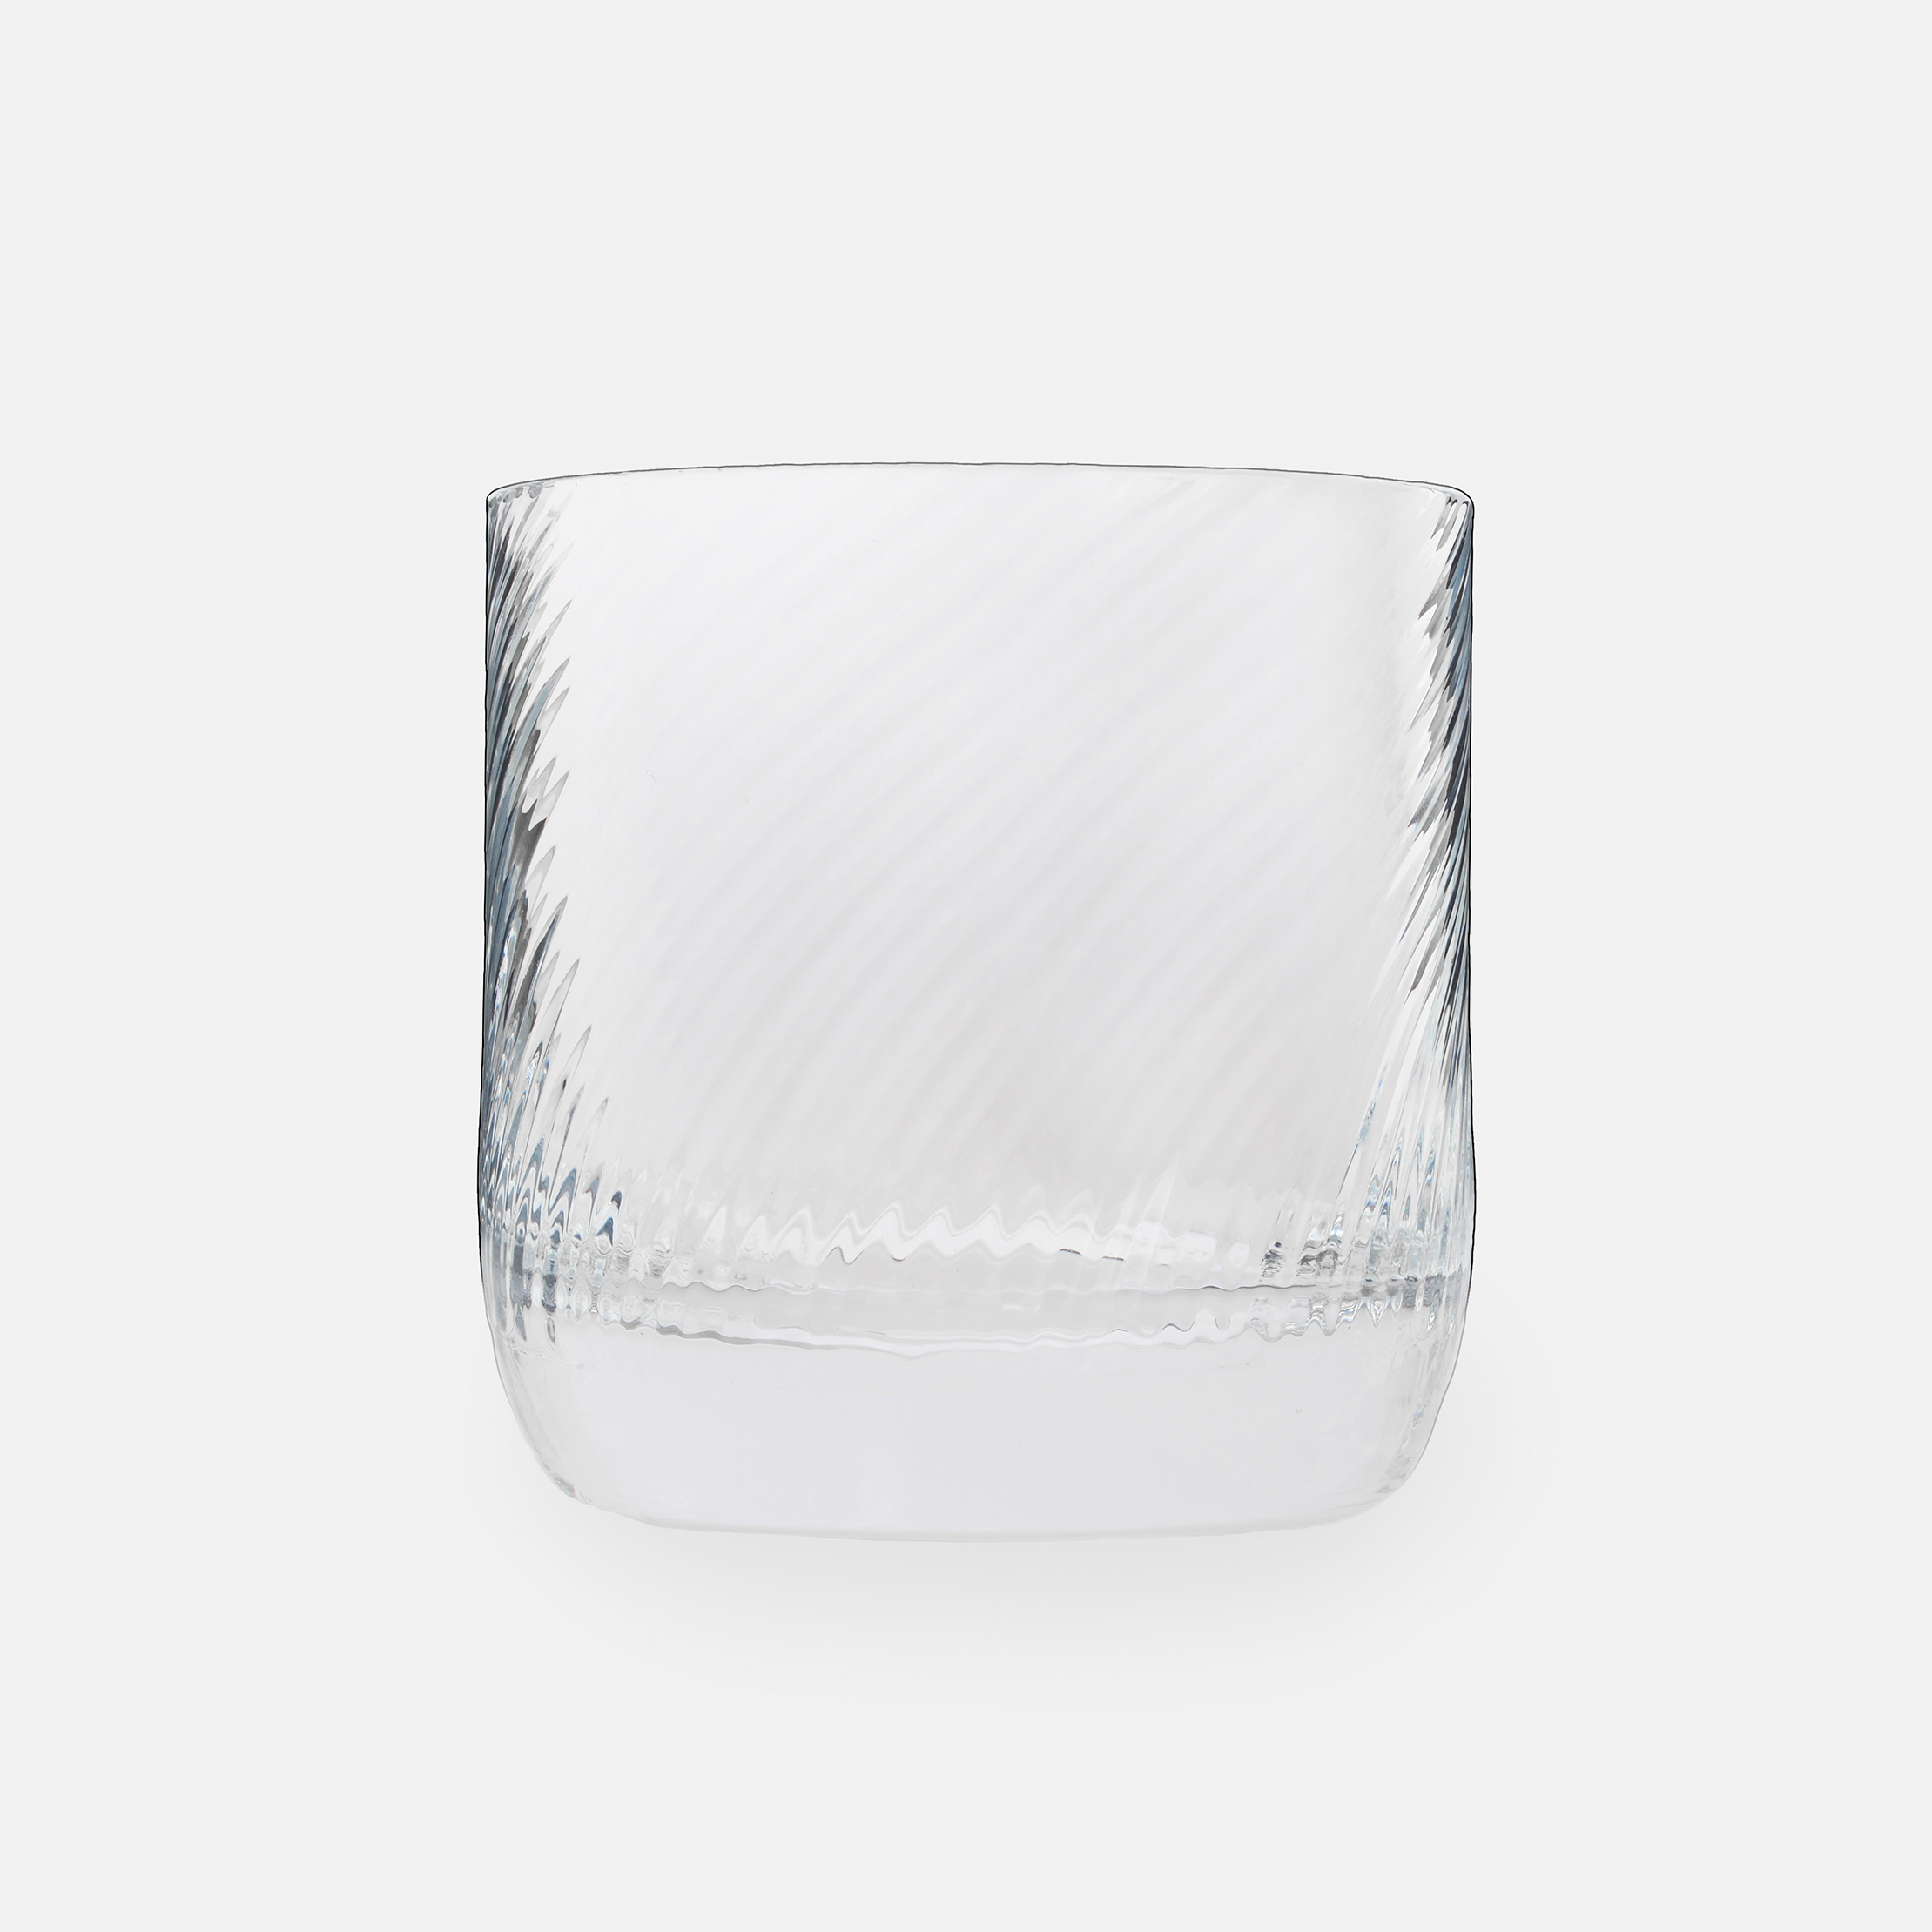 Isle of Harris Gin Glass - Made in collaboration with Wrześniak Glassworks, this carefully crafted lowball tumbler is the perfect glass from which to enjoy your Isle Of Harris Gin.